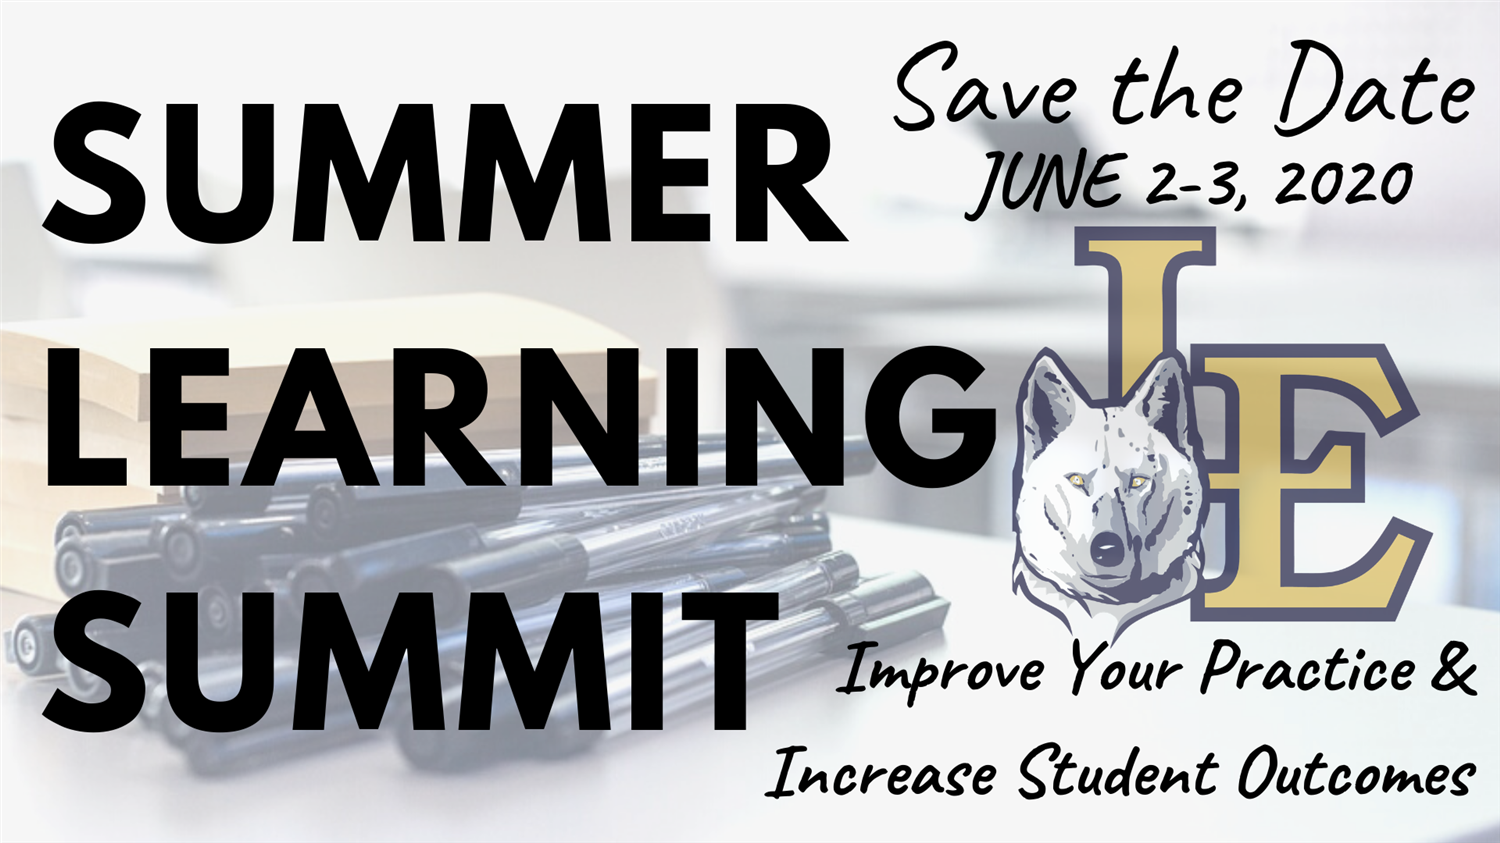 Summer Learning Summit Save the Date June 2-3